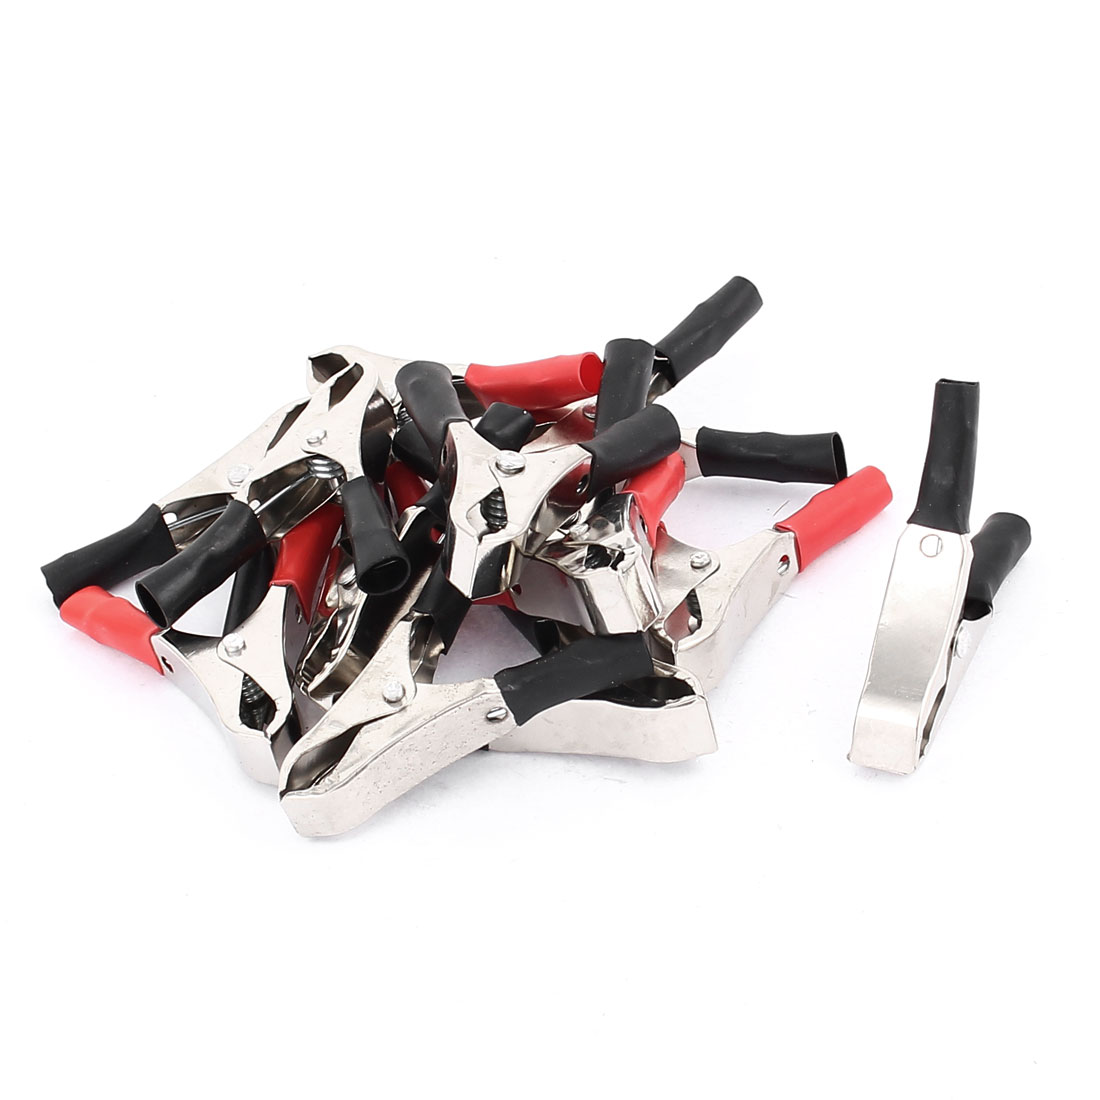 Car Battery Test Insulated Boot Spring Loaded Crocodile Alligator Clamp Clip Black Red 13pcs